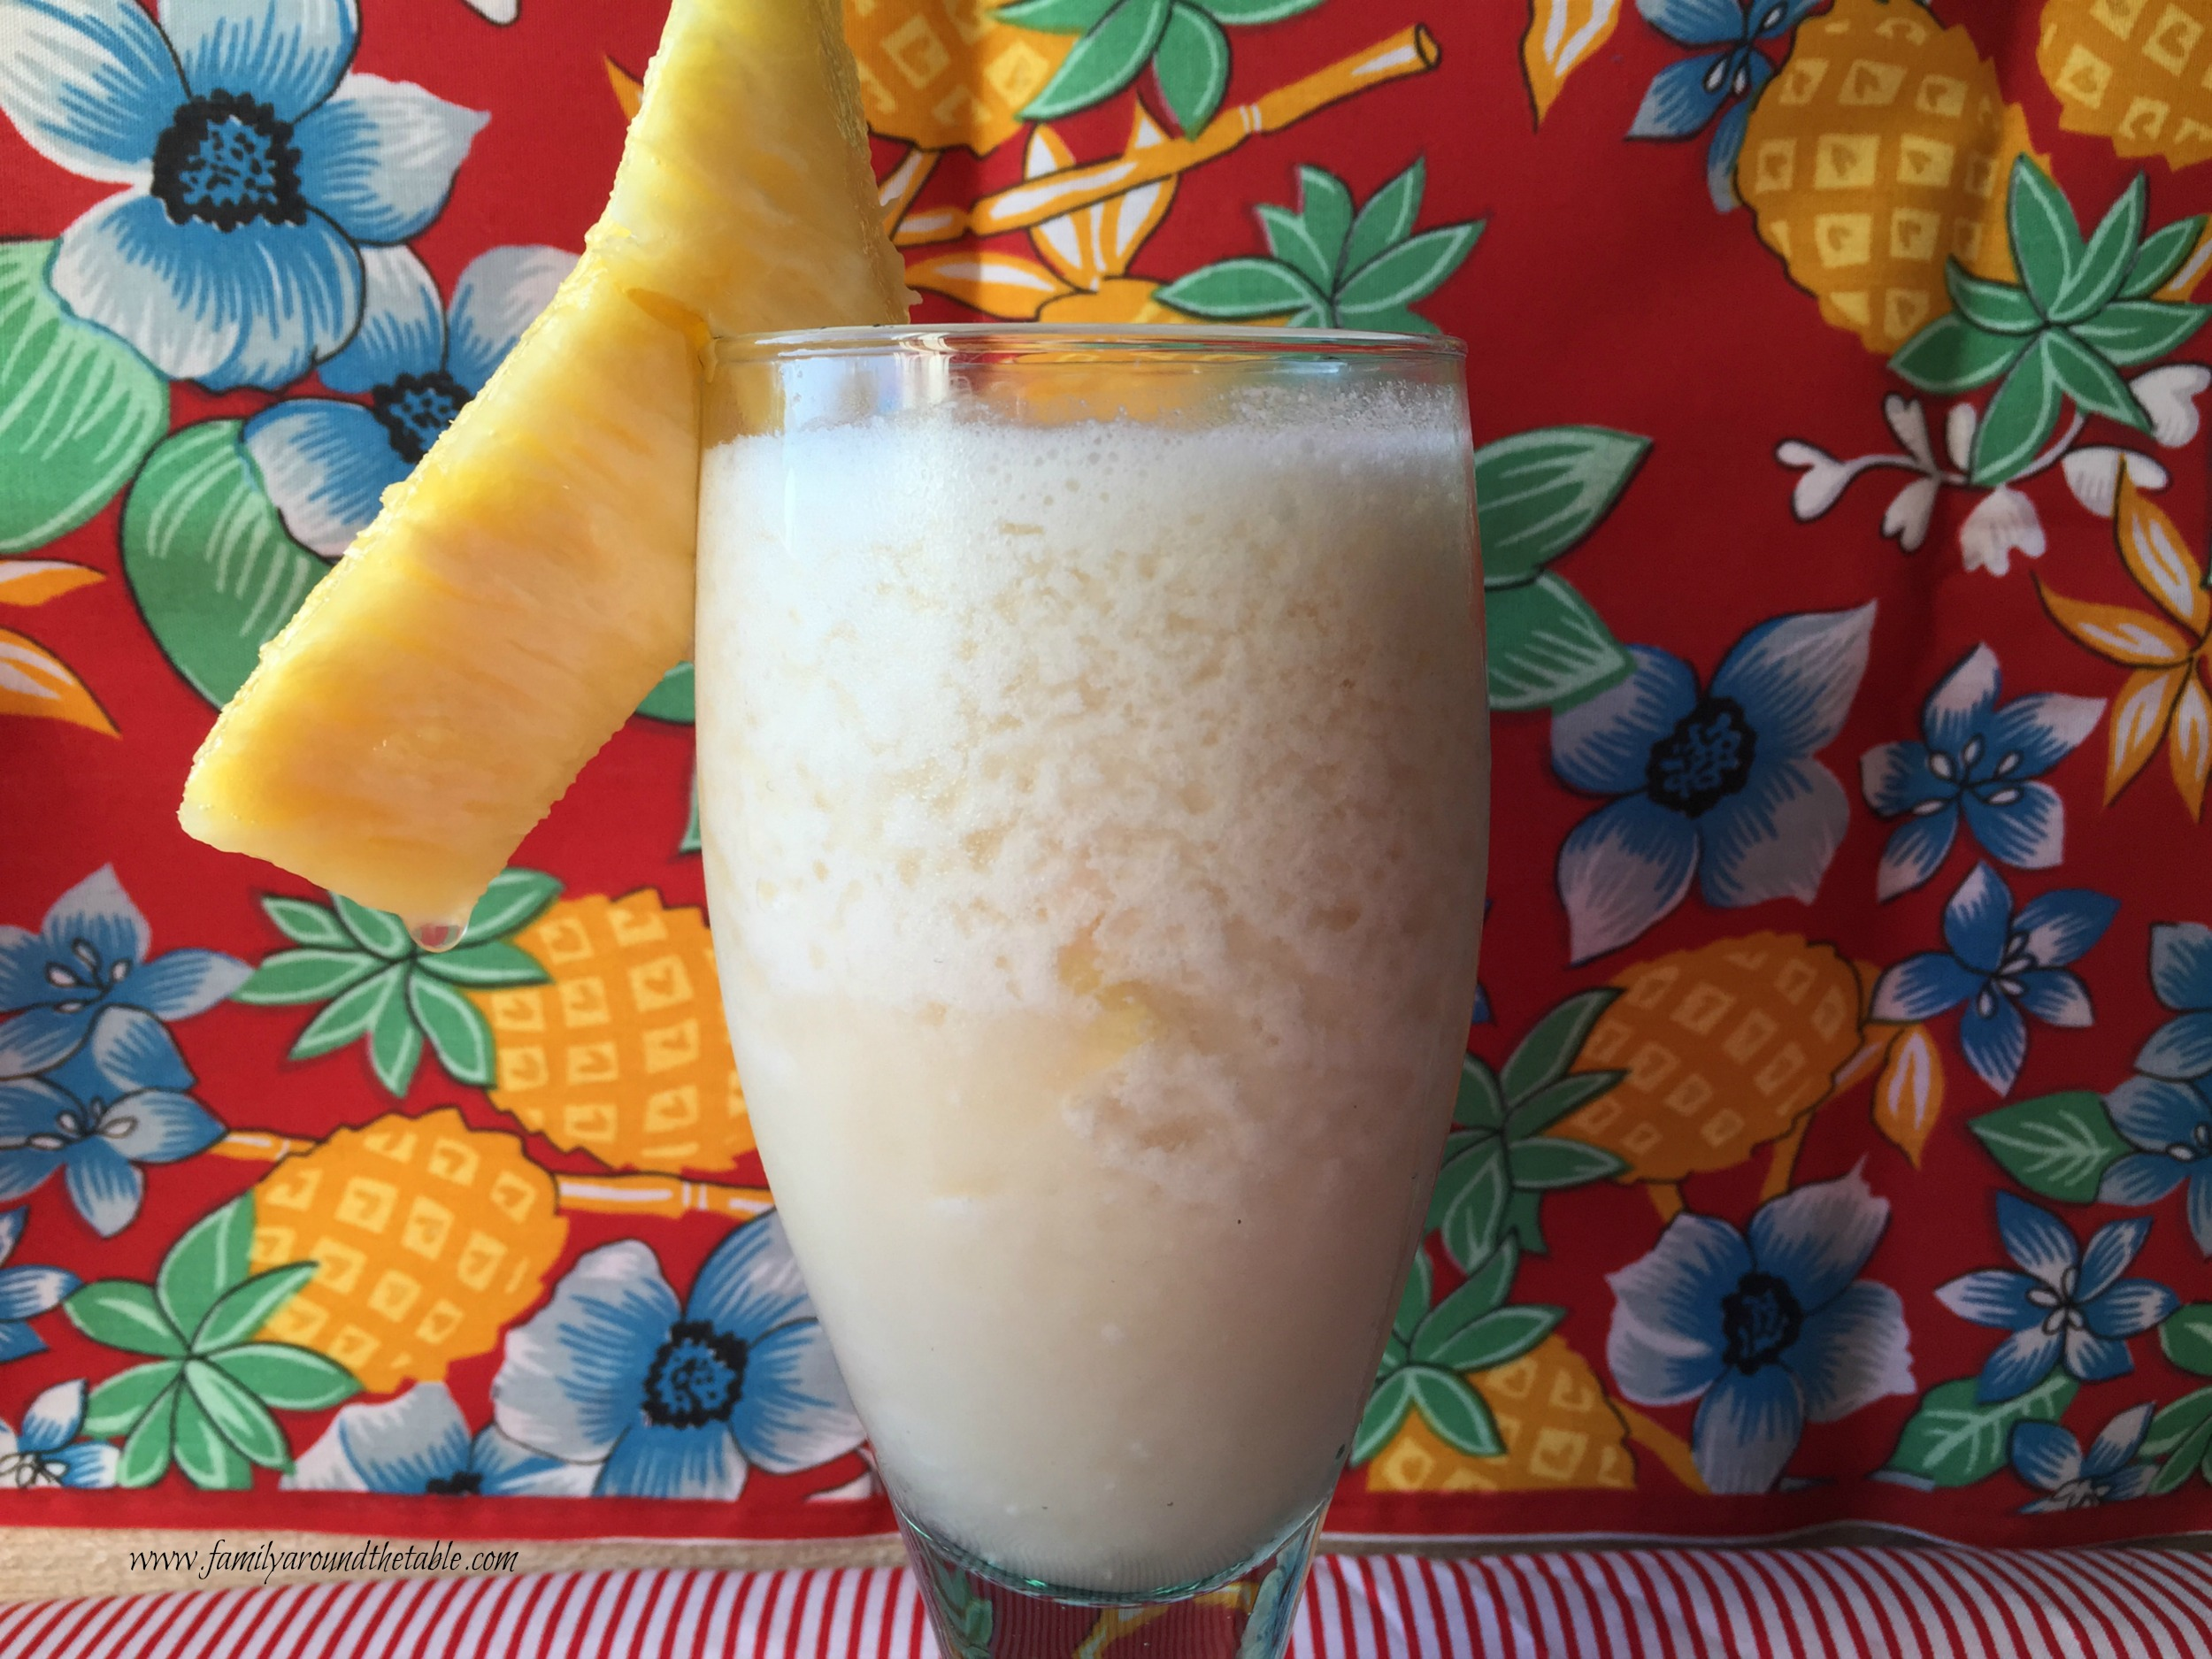 Have a Spiced Piña Colada at any celebration.